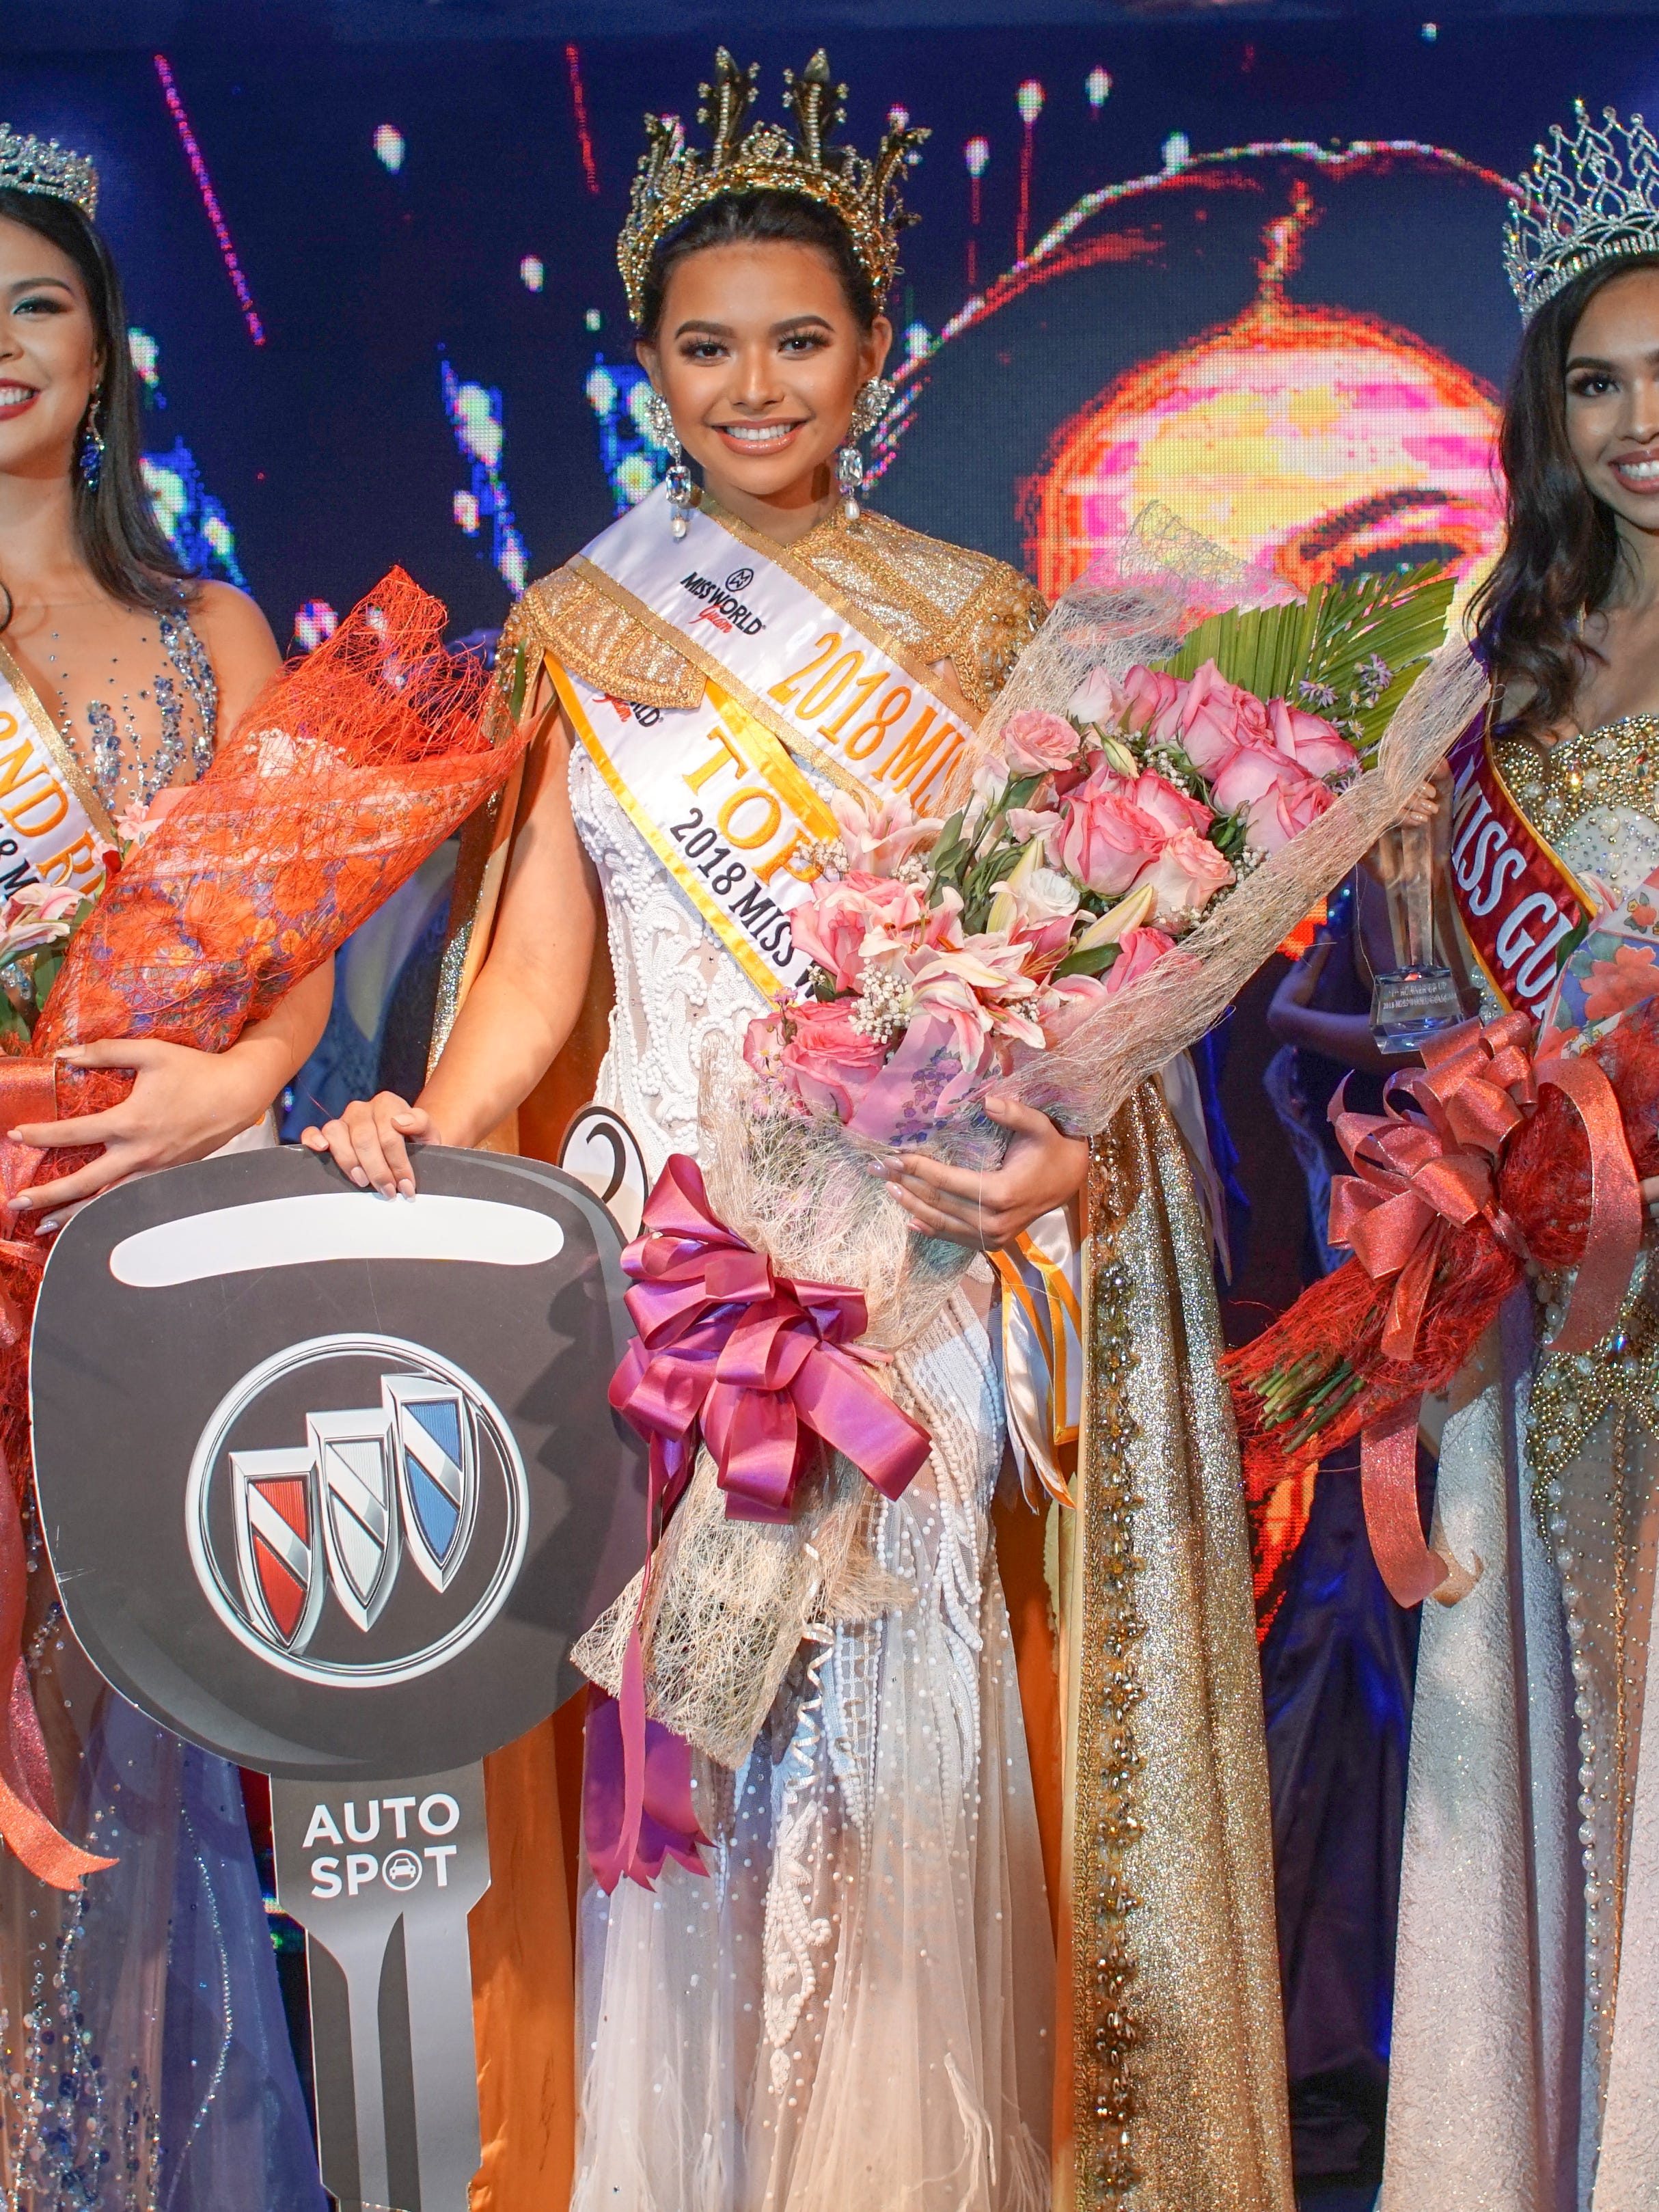 From left: Second runner up Mariana Quintanilla Kier, 18, of Sinajana; Miss World Guam 2018 Gianna Camacho Sgambelluri, 18, of Barrigada; Miss Asia Pacific International Cyndal Abad, 18, of Dededo. Miss World Guam 2018 was held at the Sheratong Laguna Guam Resort Oct. 15, 2018.